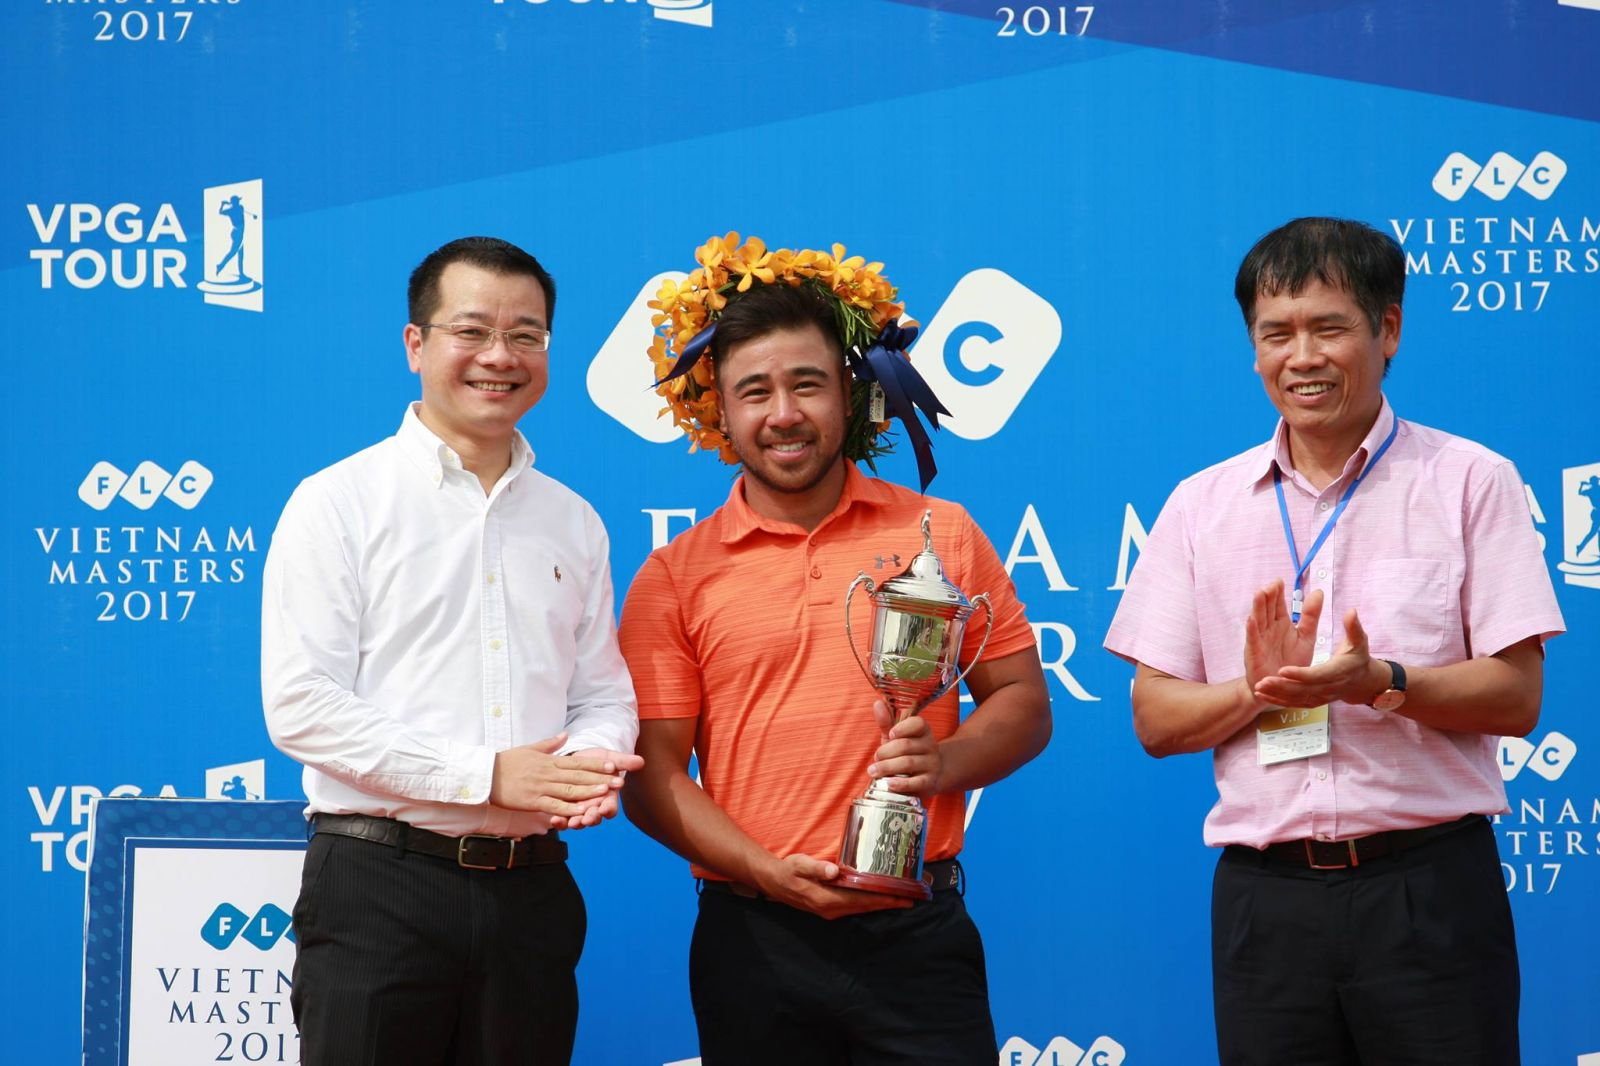 Andy Chu wins first VPGA Tour event